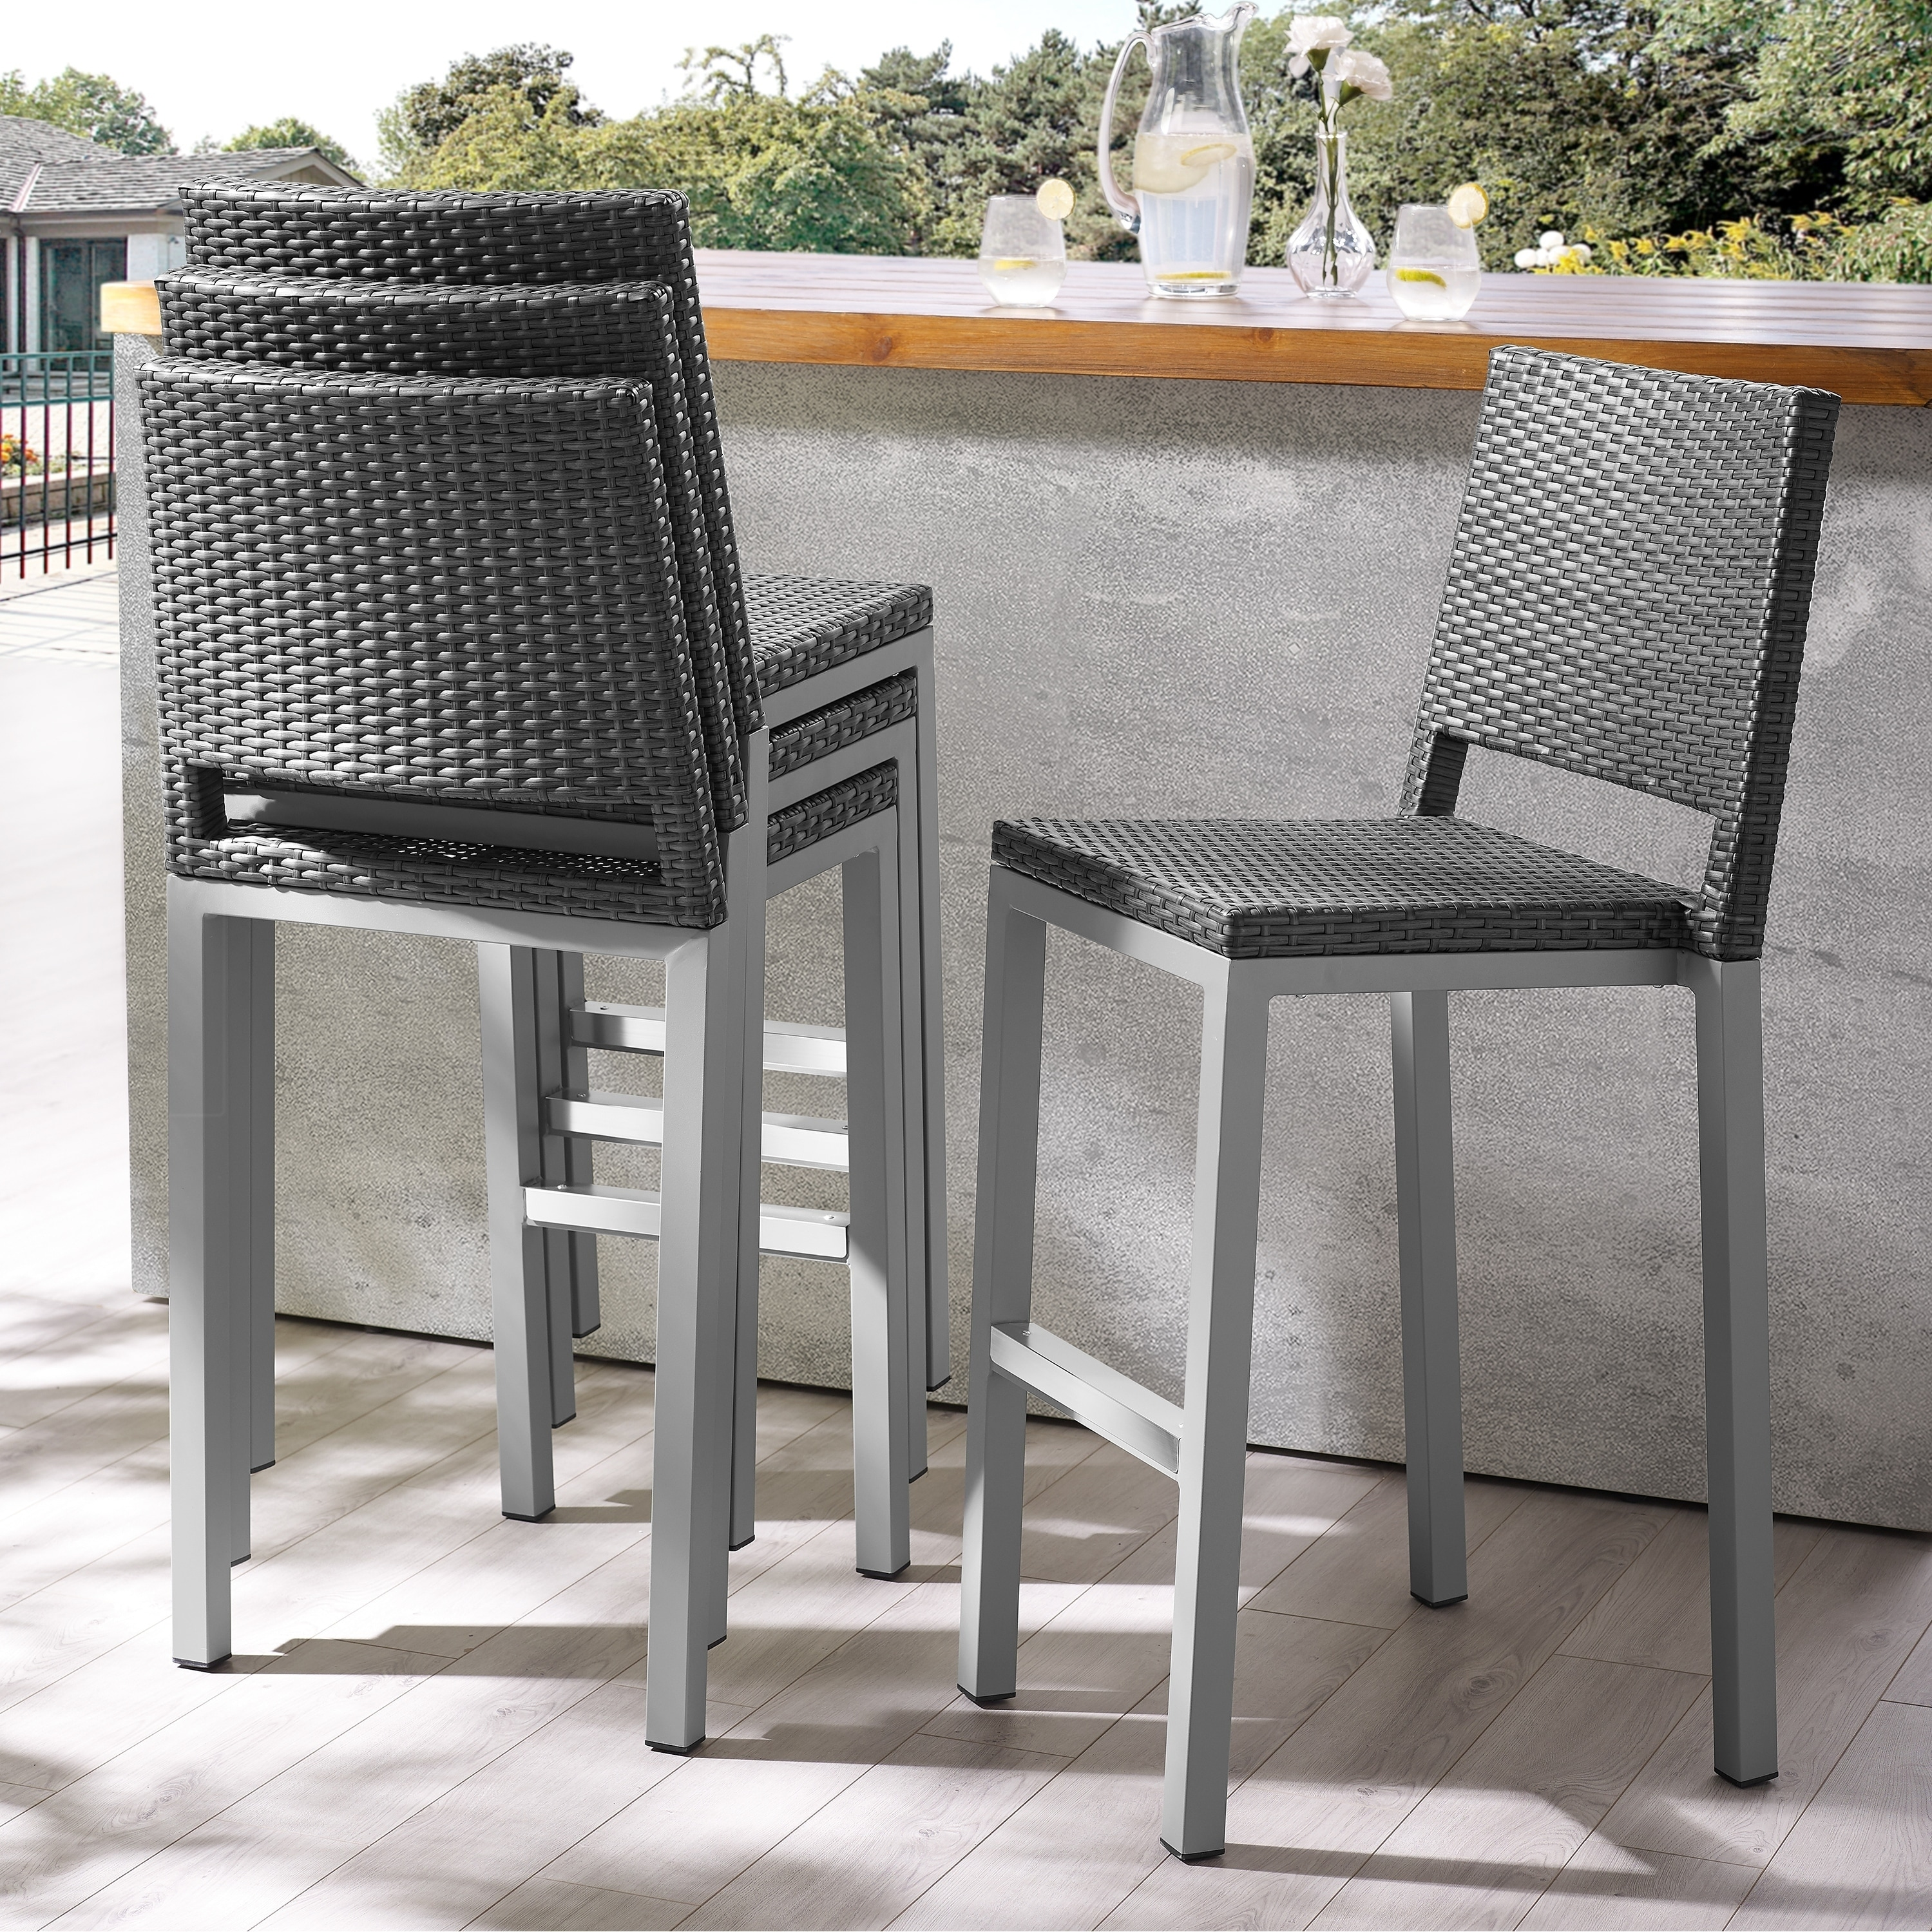 Image of: Shop Black Friday Deals On Plymouth Patio Aluminum 30 Inch Outdoor Wicker Bar Stools Set Of 4 By Havenside Home Overstock 25637628